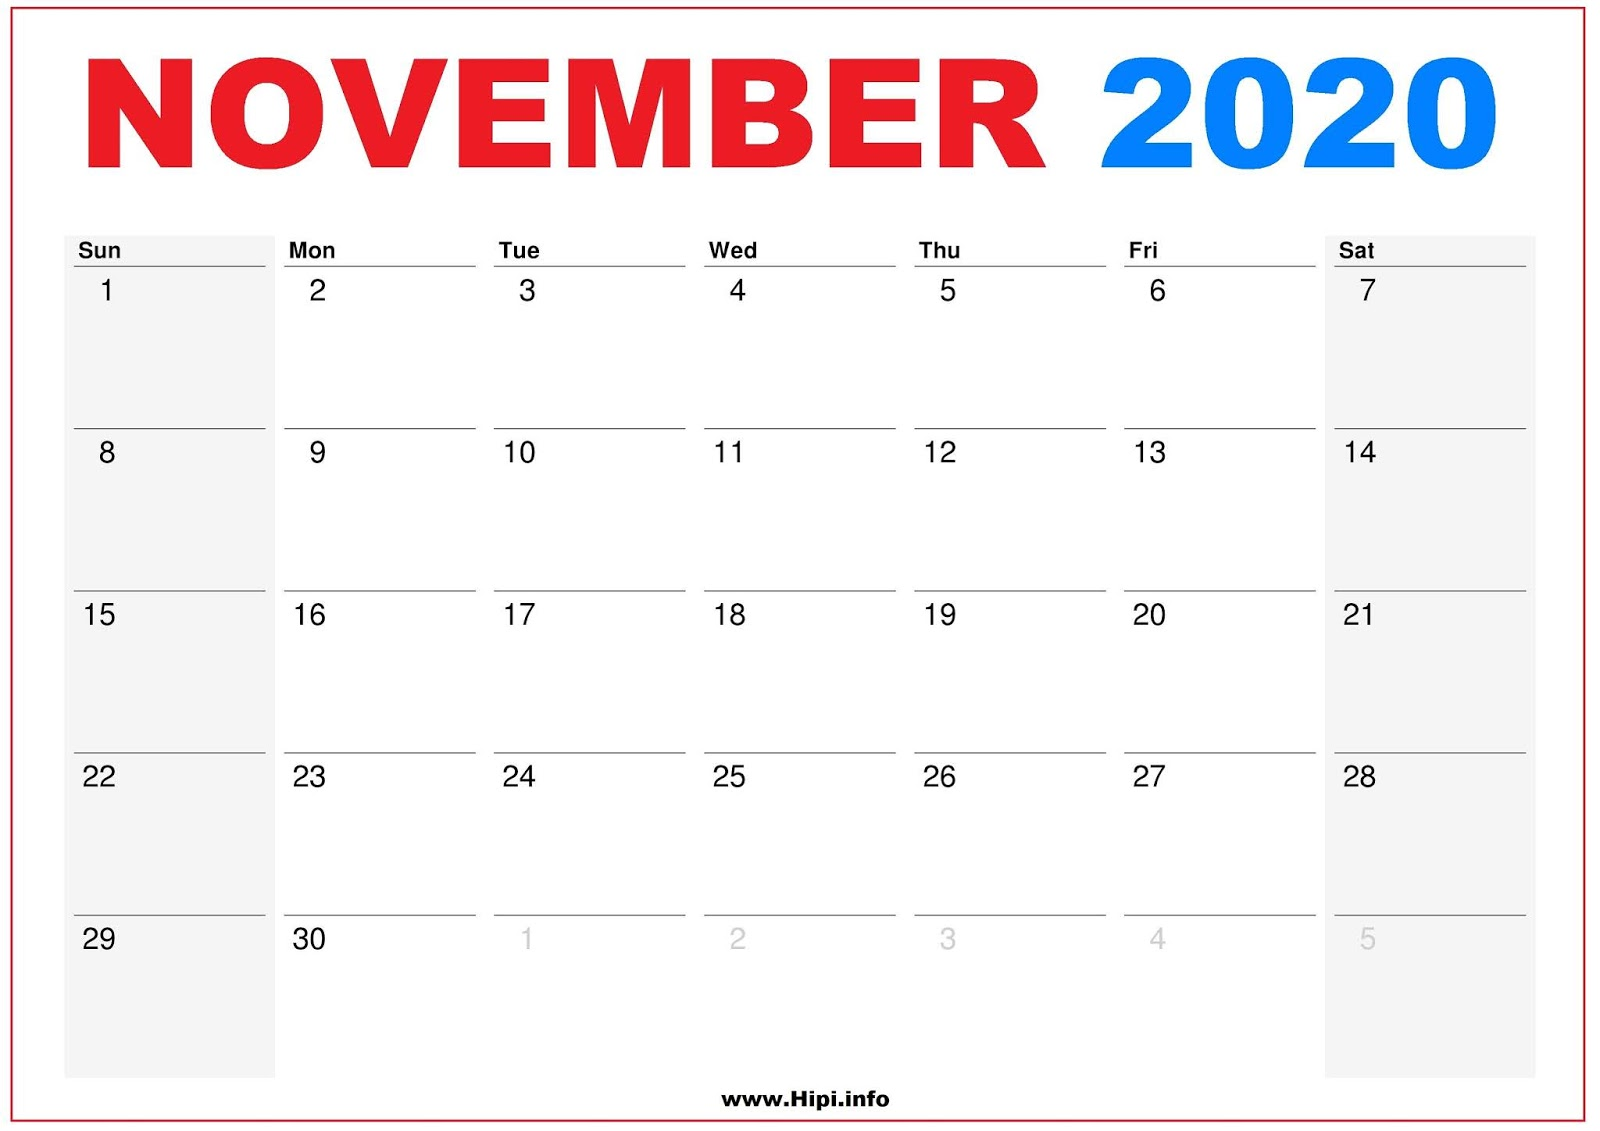 November 2020 Calendar Wallpaper Twitter Headers / Facebook Covers / Wallpapers / Calendars: 2020